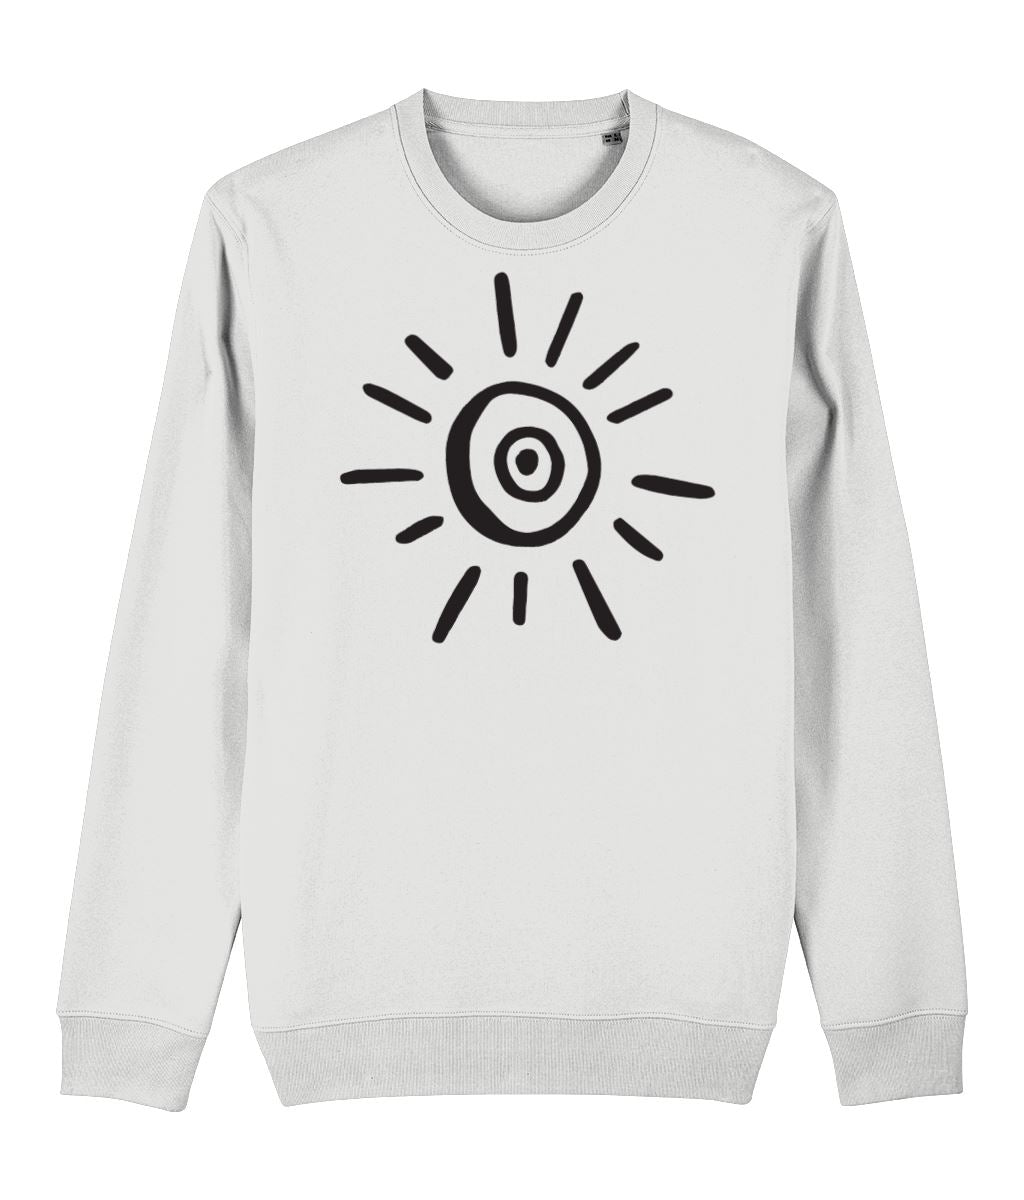 Sun Symbol Sweatshirt Clothing IndianBelieves White X-Small